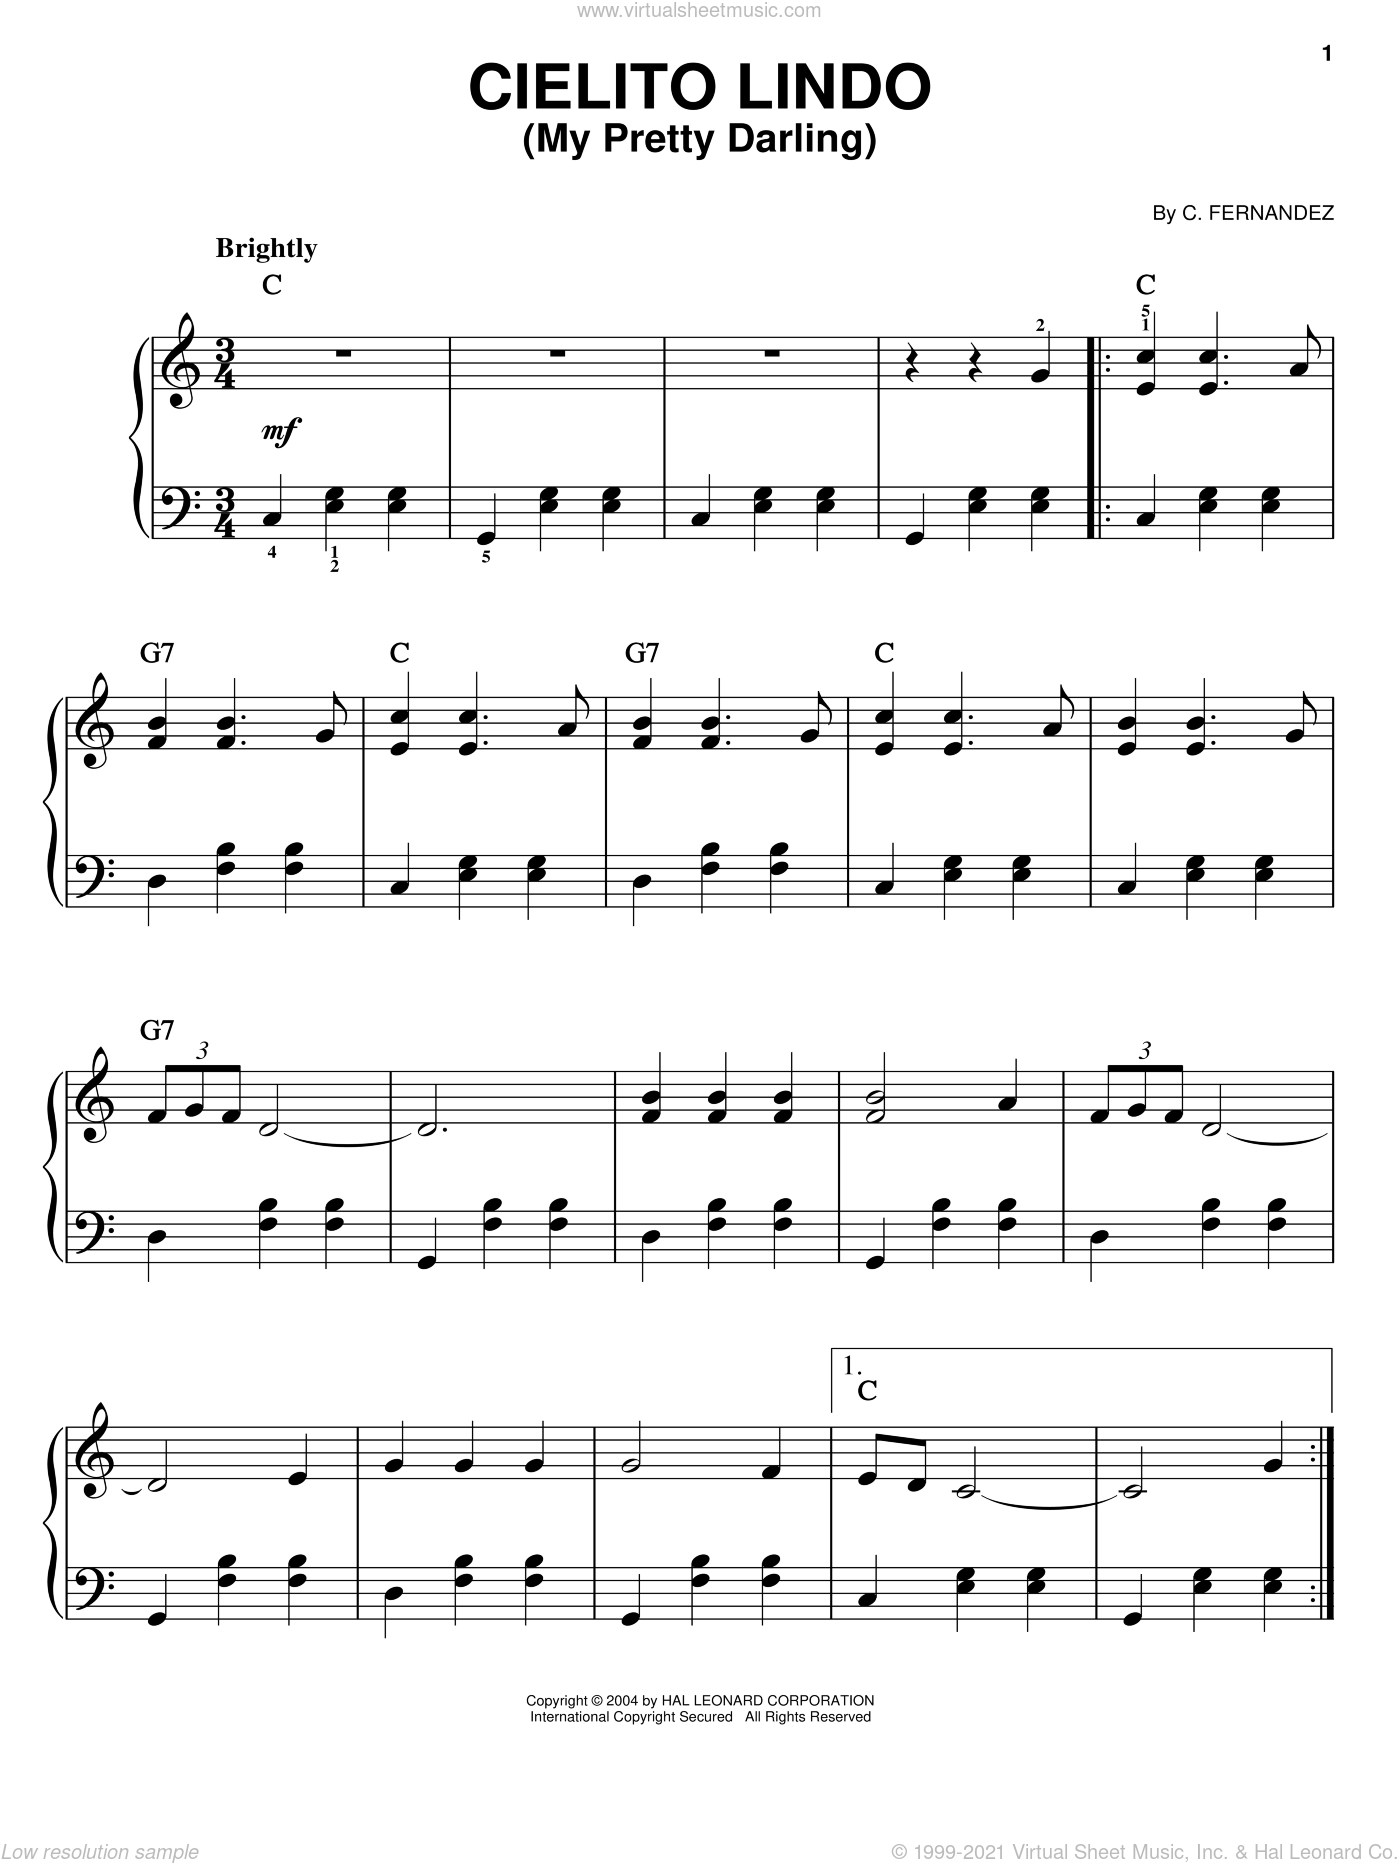 Cielito Lindo (My Pretty Darling) sheet music for piano solo by Cortez Fernandez, easy skill level